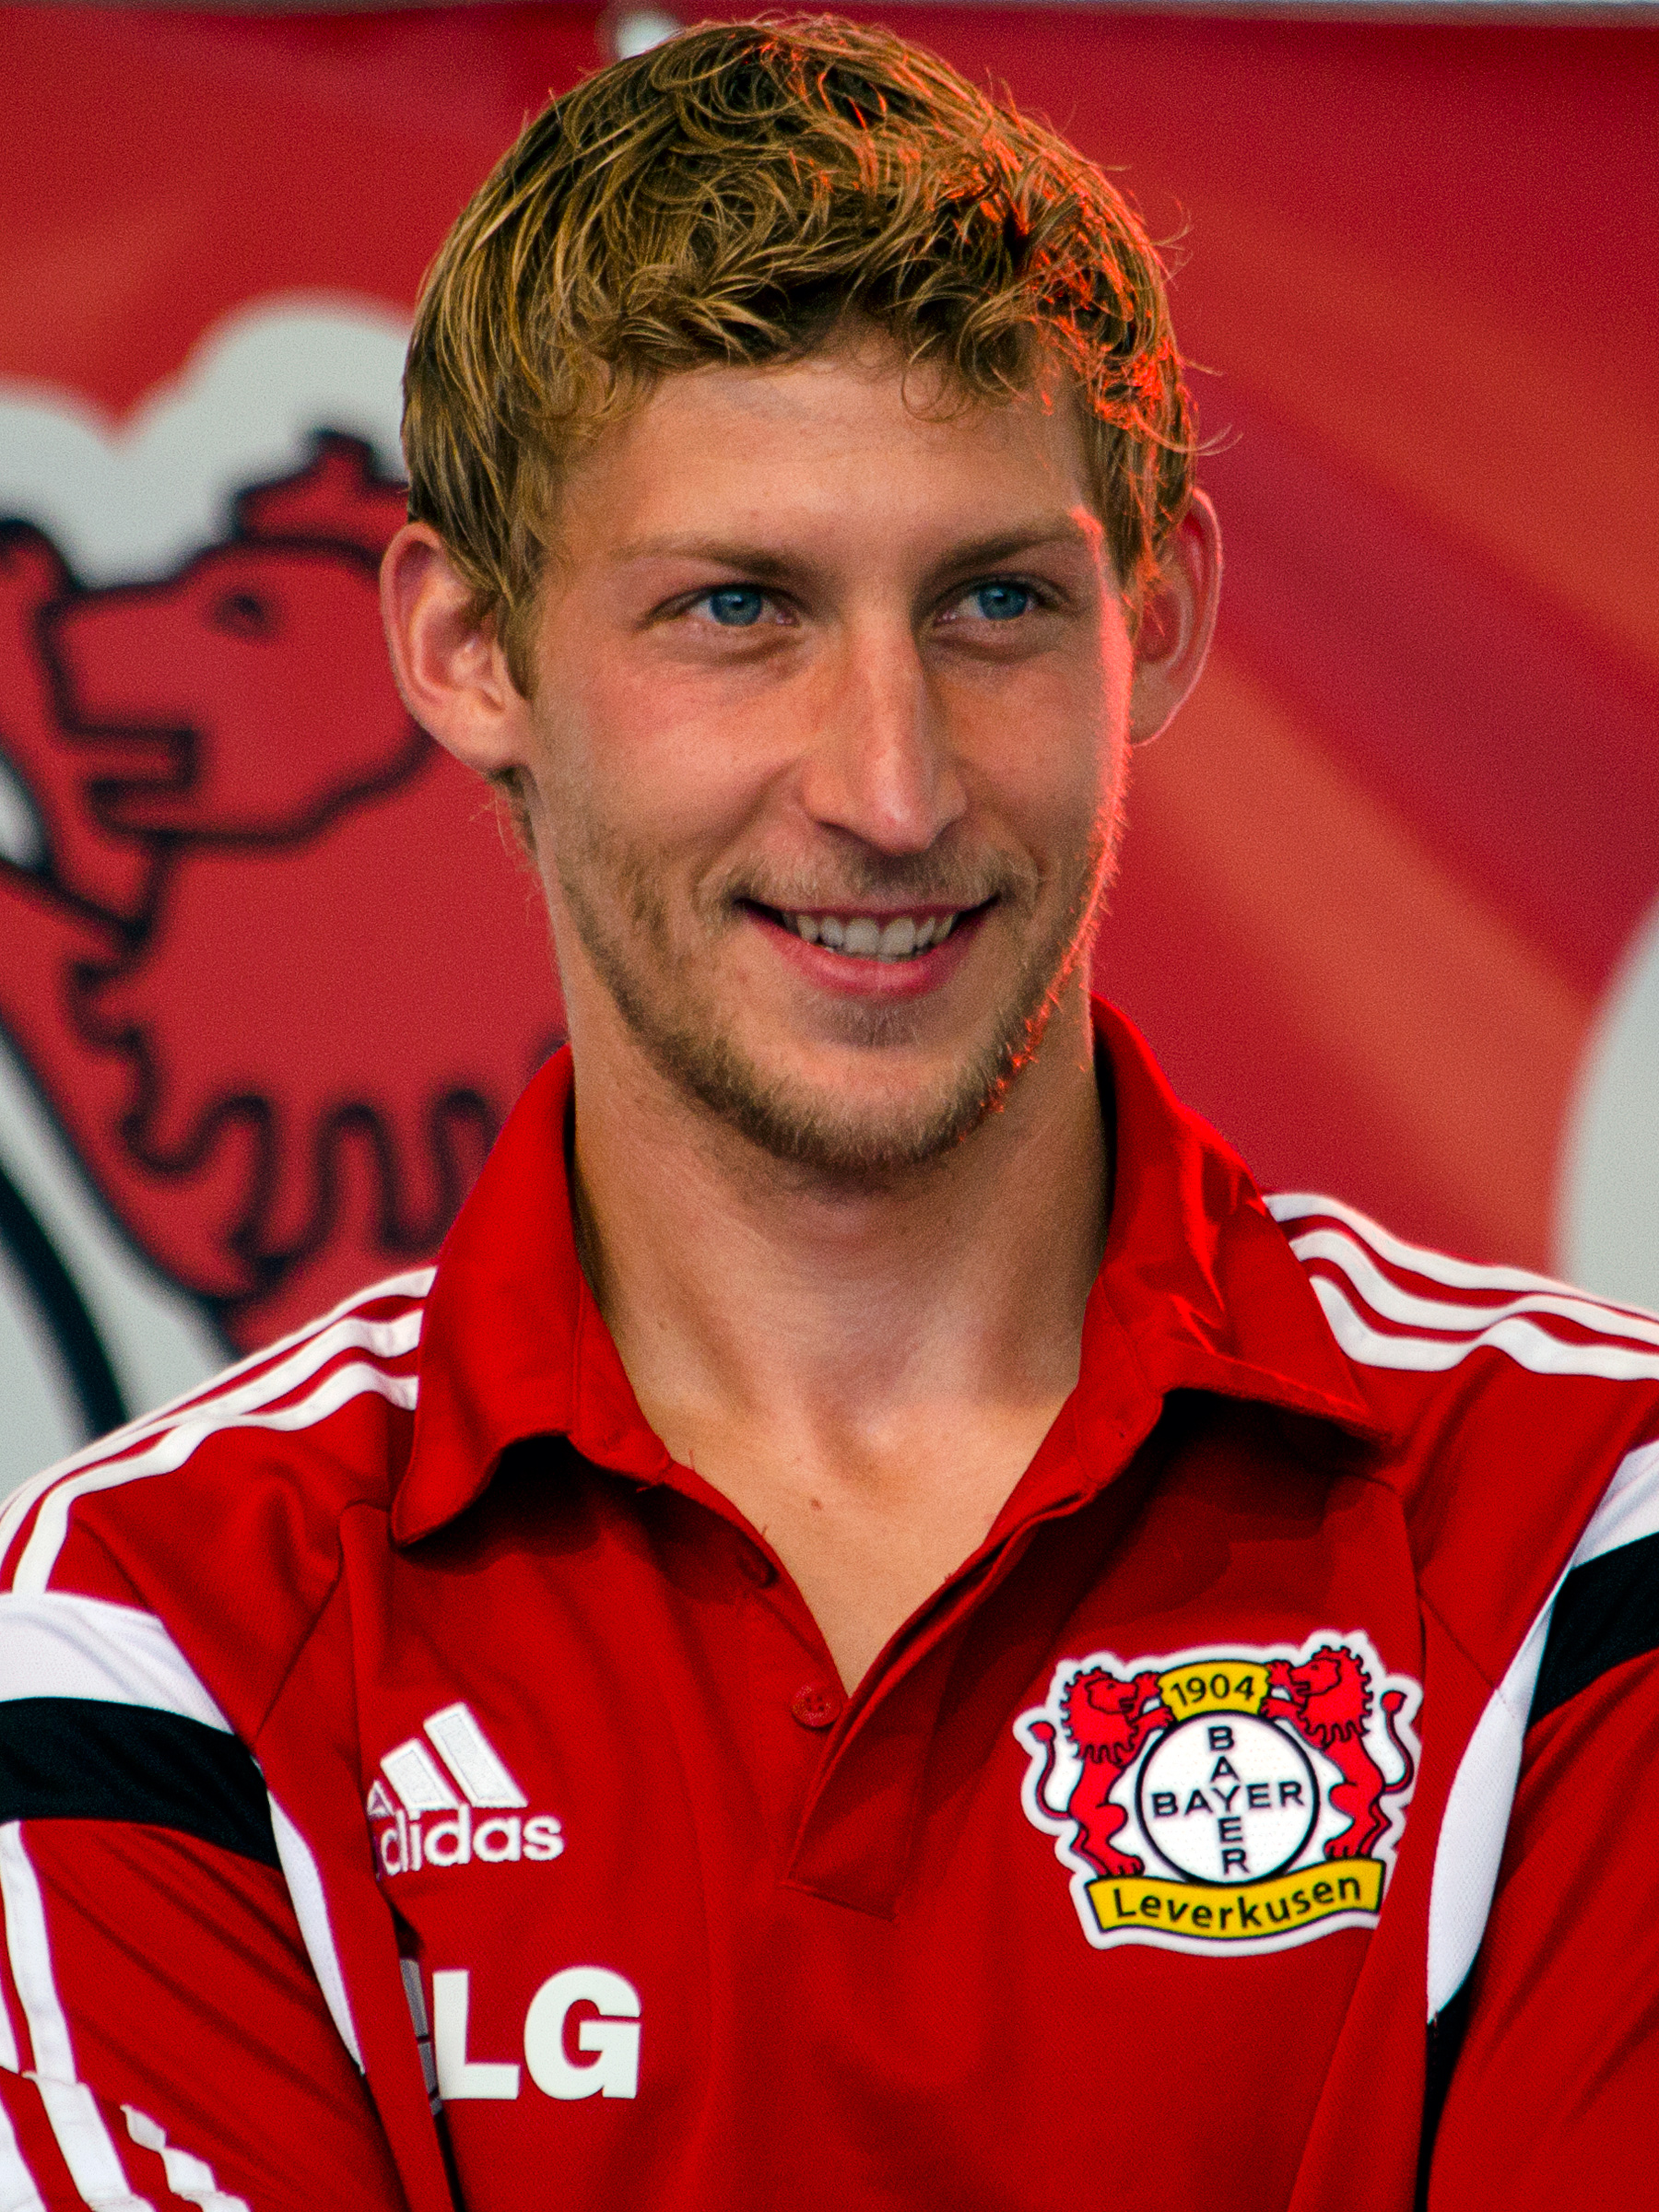 The 34-year old son of father (?) and mother(?) Stefan Kießling in 2018 photo. Stefan Kießling earned a  million dollar salary - leaving the net worth at 3 million in 2018